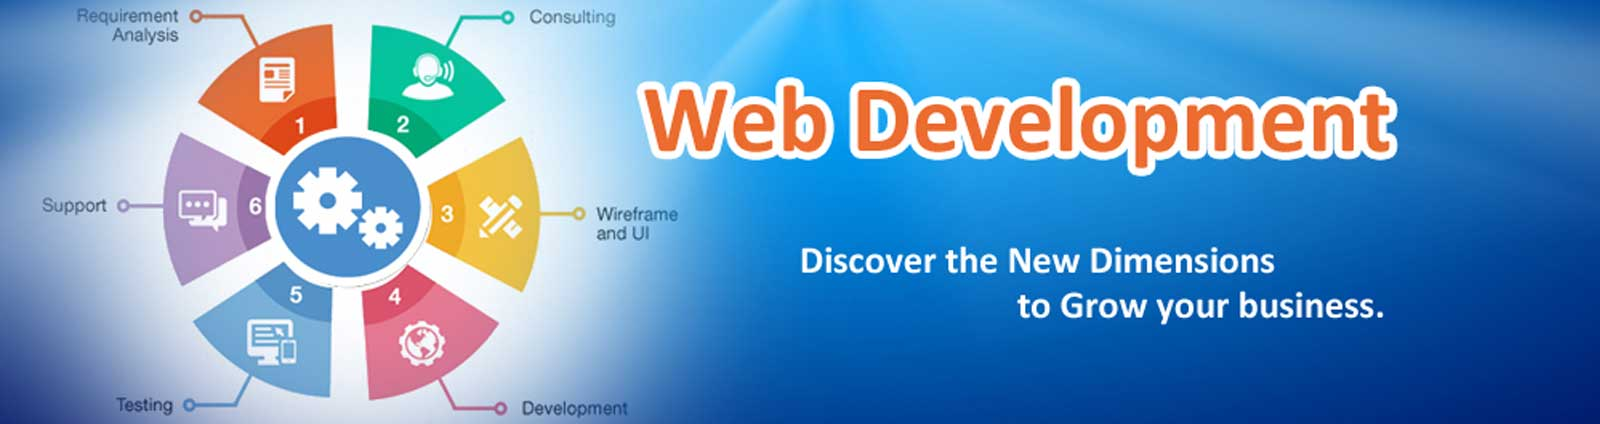 dating web design company Dating site designer offers professional dating website design and development services professional backend programming utilizing out of the box programming or from scratch site developments.